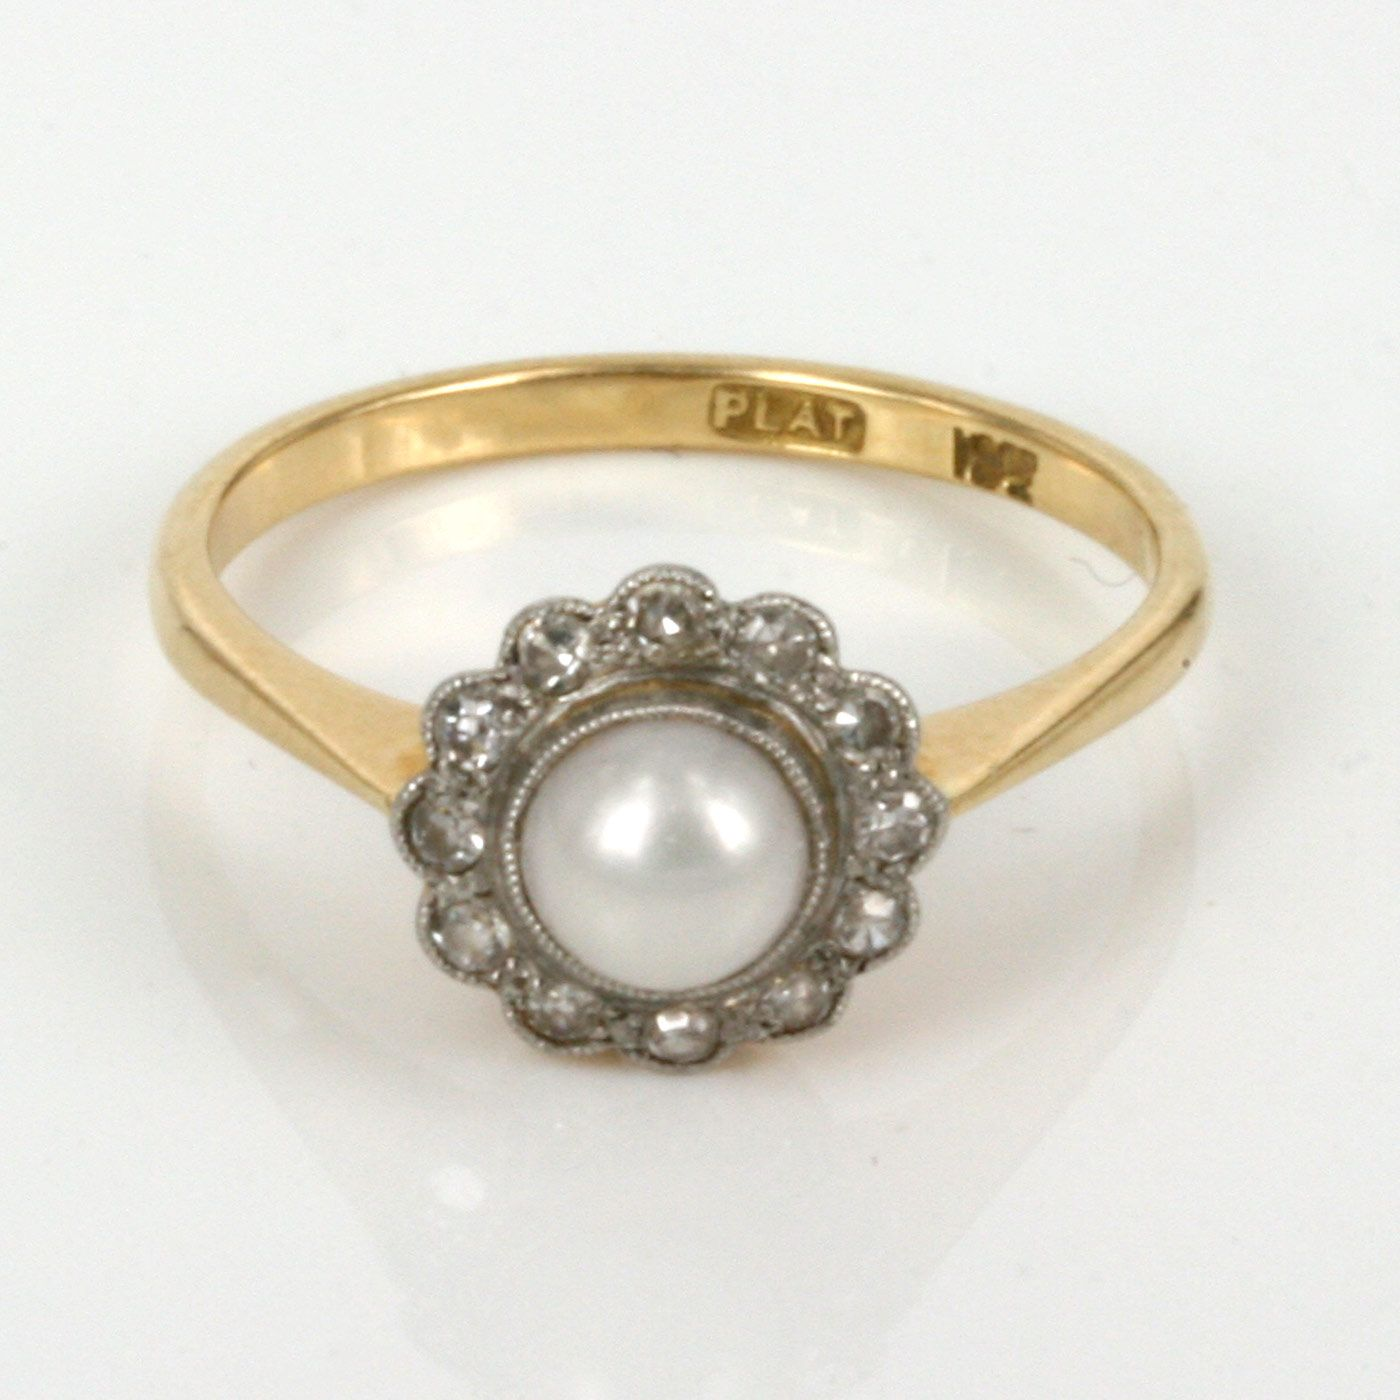 diamond-pearl-ring-es2428-2.jpg (1400×1400)